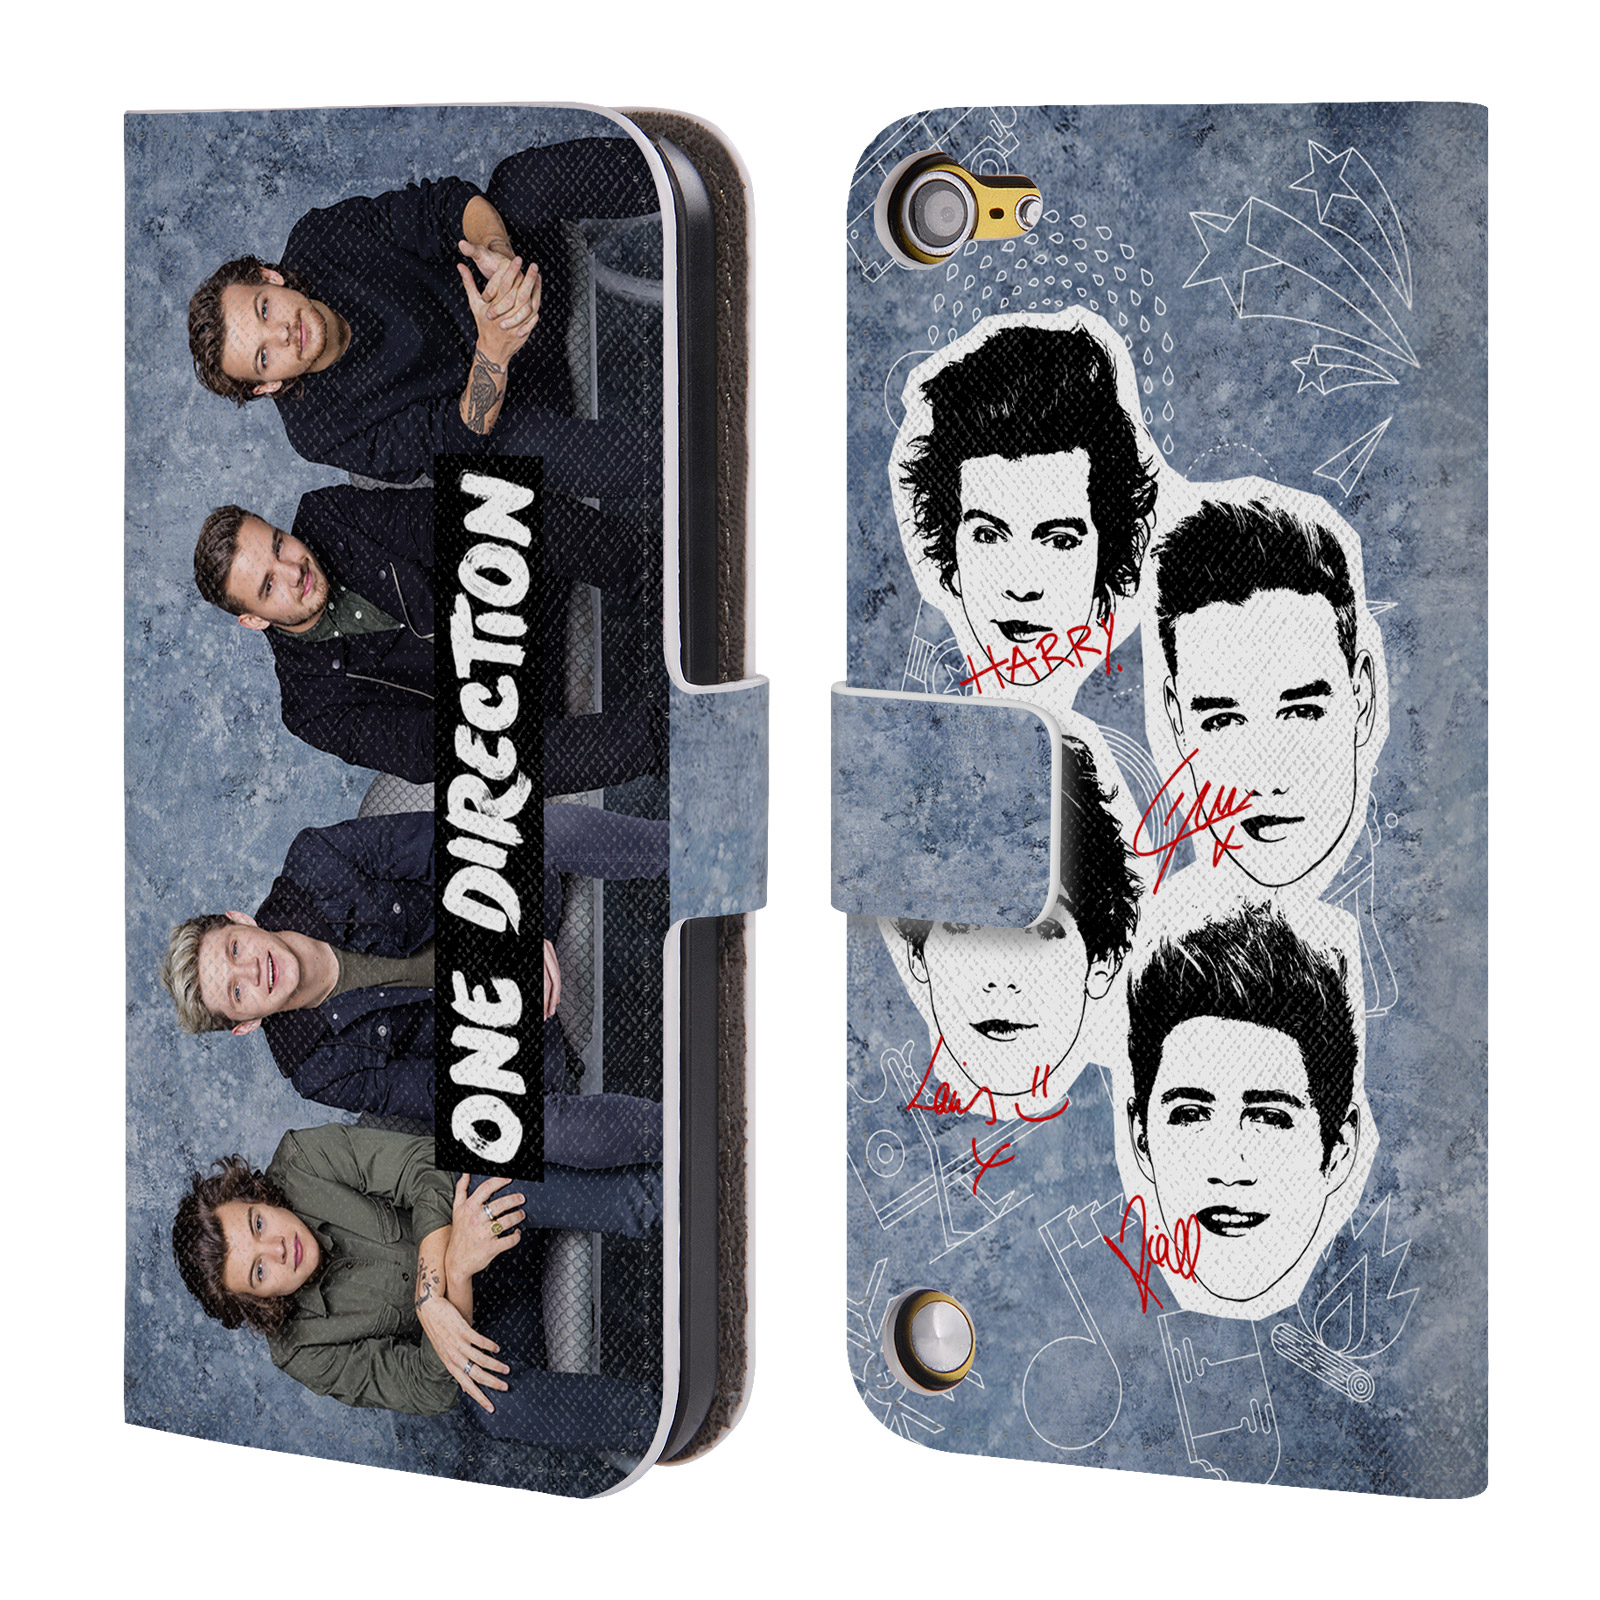 OFFICIAL ONE DIRECTION GROUP PHOTO SOLO LEATHER BOOK WALLET CASE COVER FOR APPLE IPOD TOUCH MP3